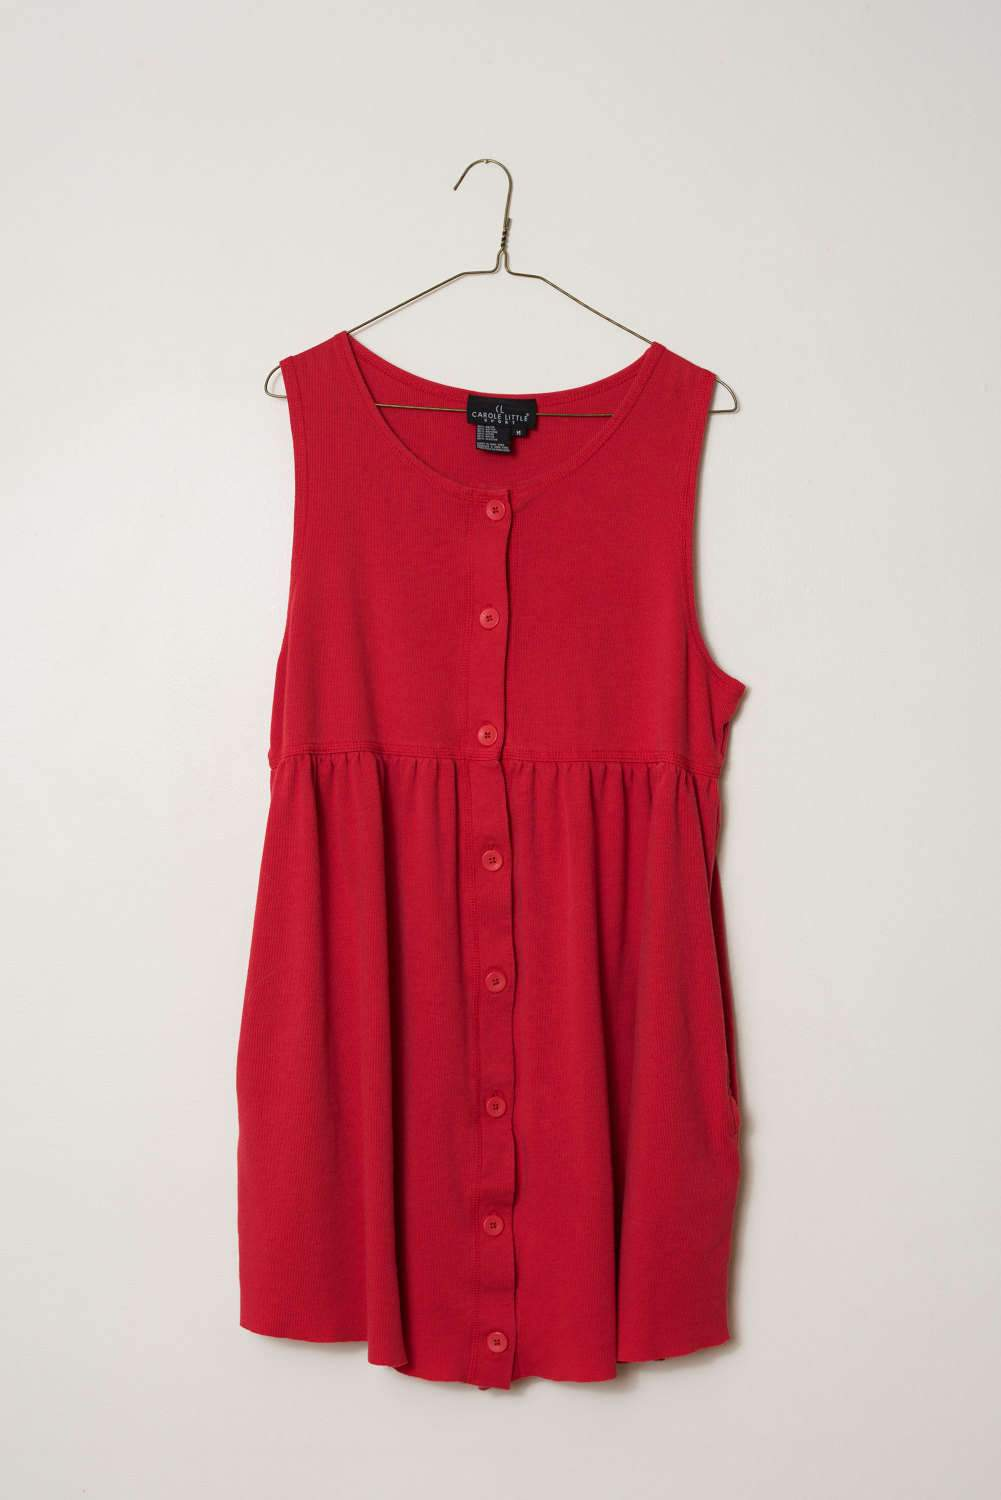 Vintage Sleeveless Raw Hem button up knit dress with pockets / S/M - Closed Caption